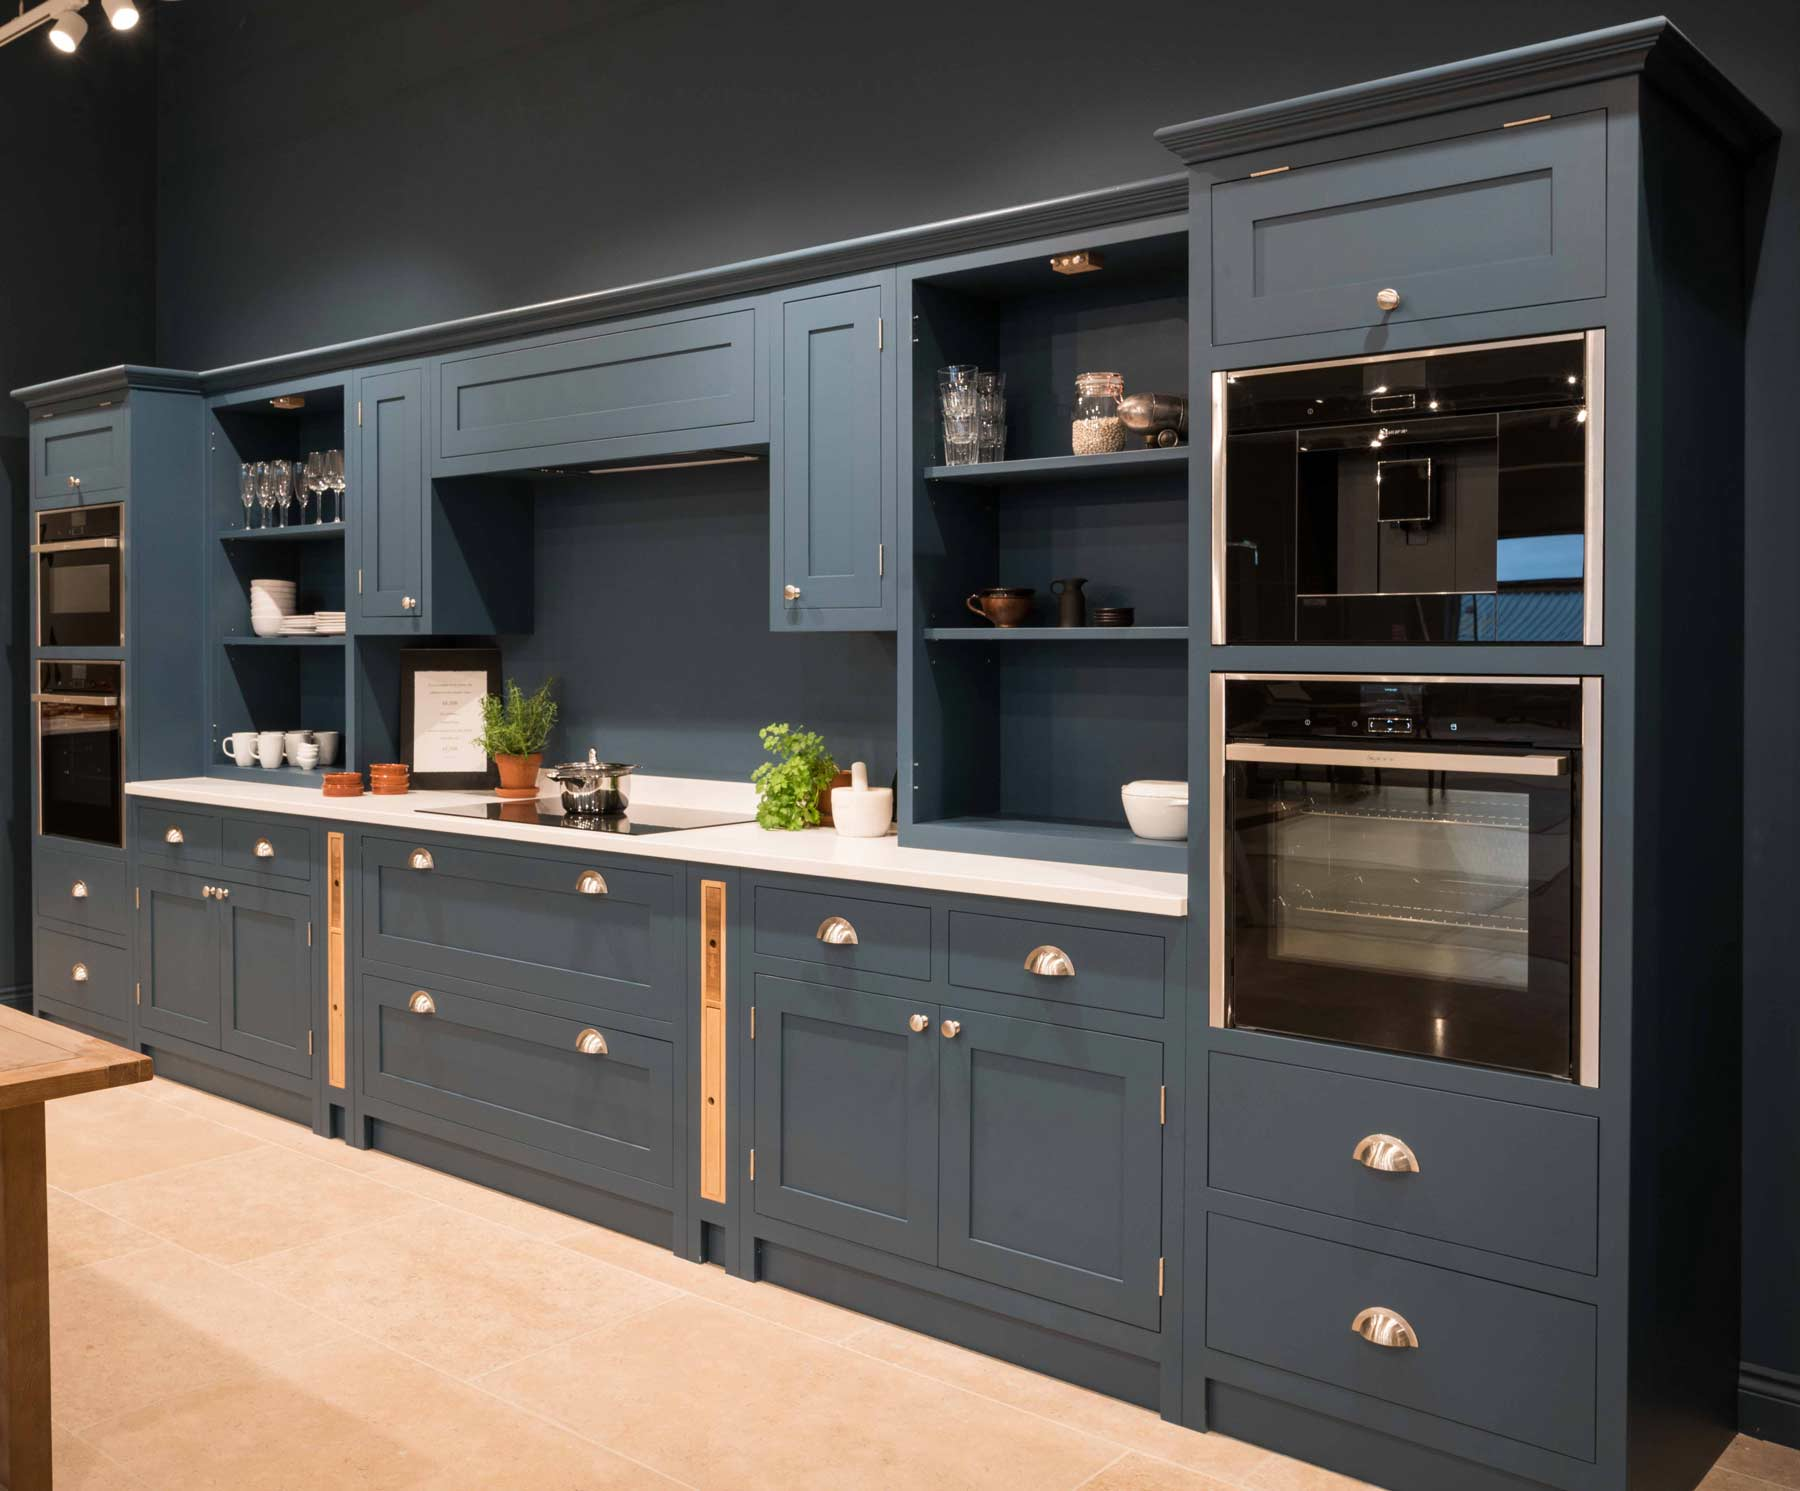 Inspiring Kitchen Trends To Watch Out for in 2020